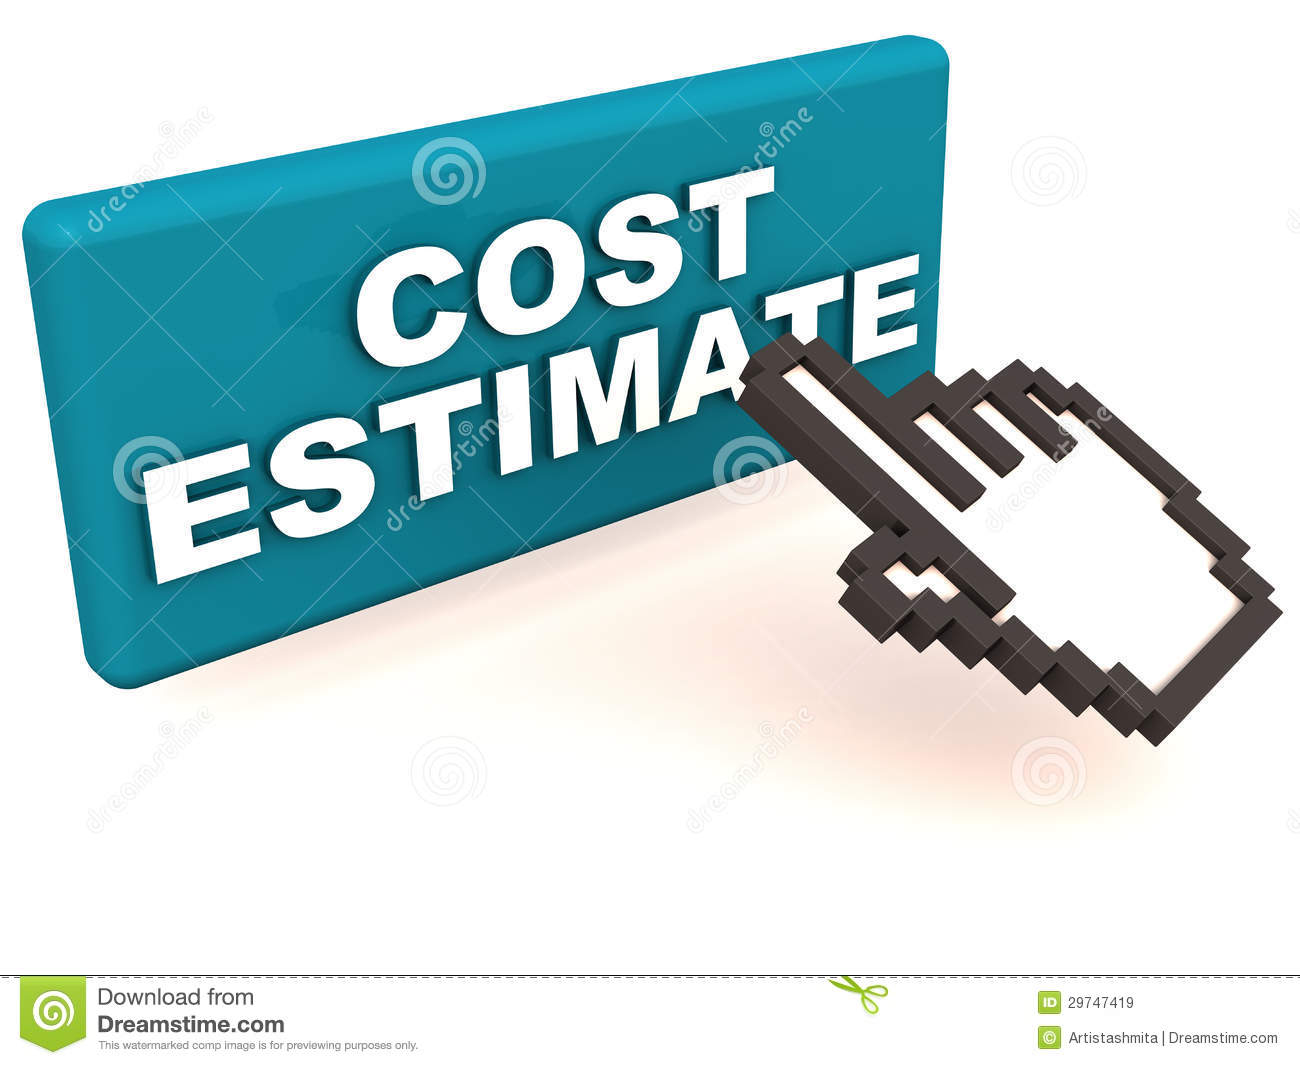 Car Insurance Estimator >> Cost Estimate Royalty Free Stock Images - Image: 29747419